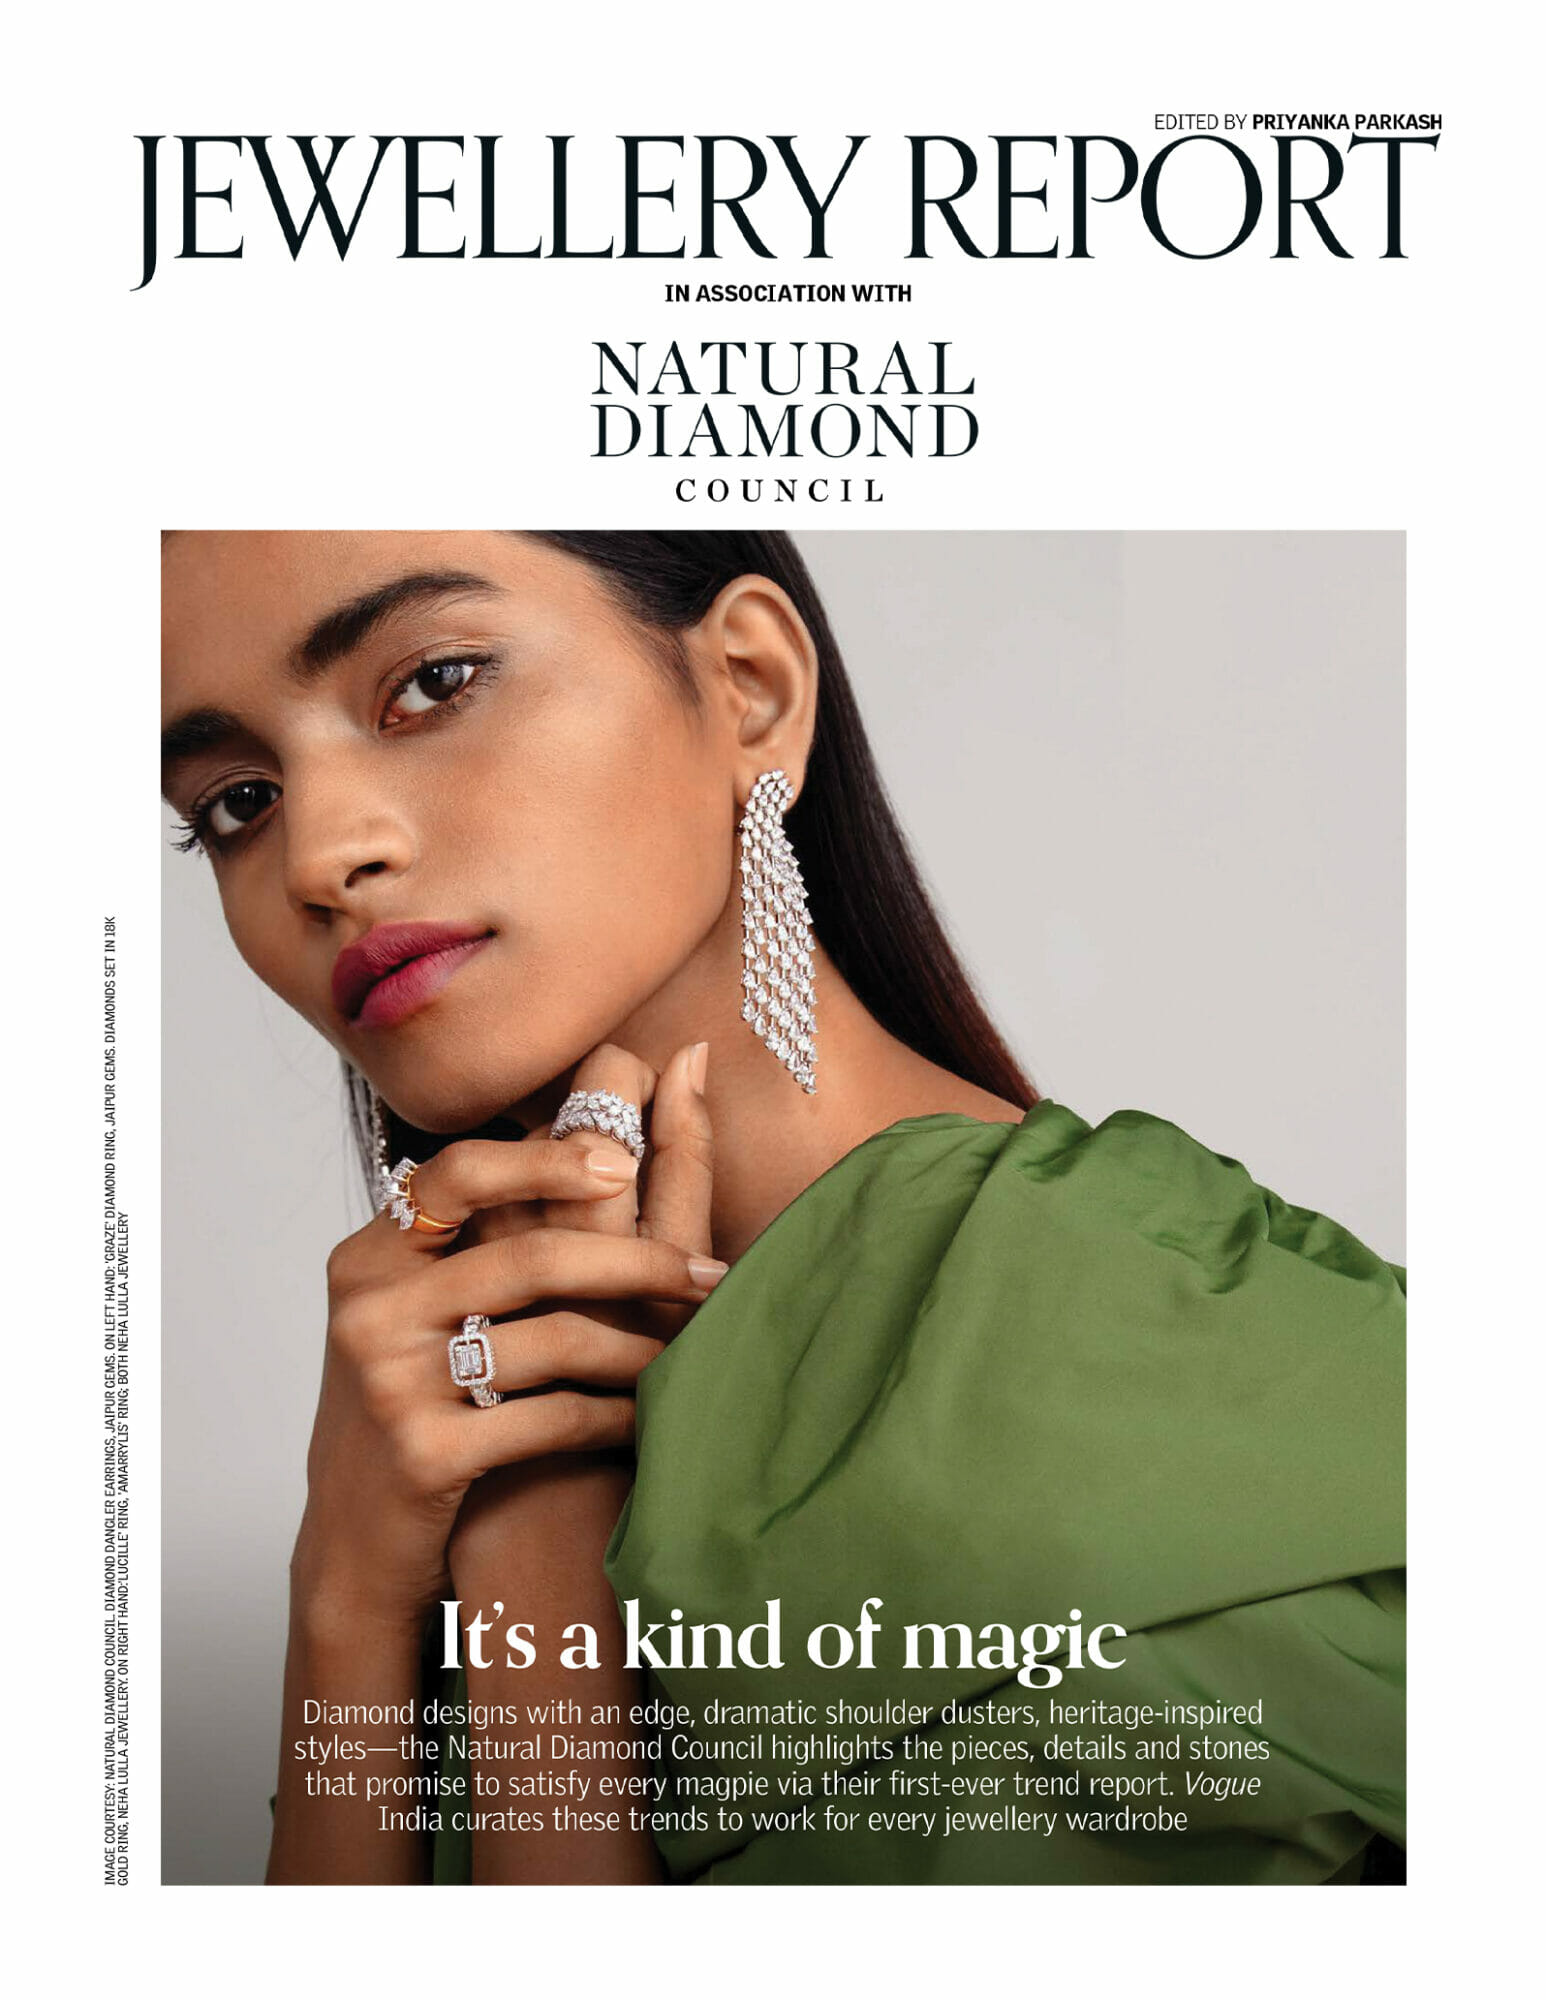 vogue-ndc-jewellery-trend-report-page-1